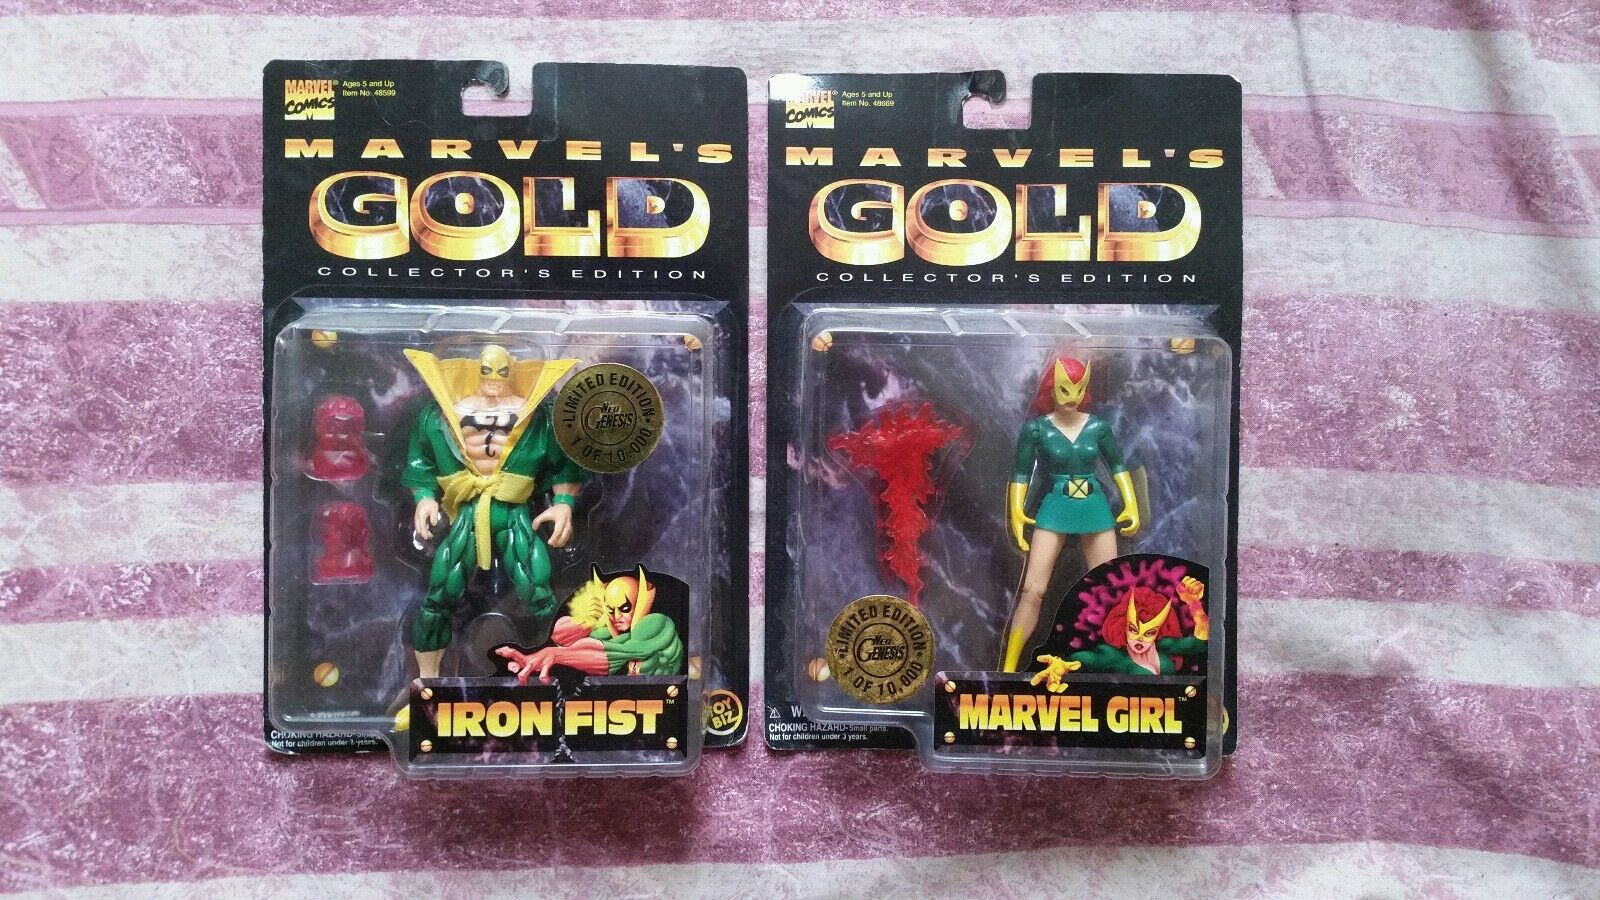 Marvel gold iron fist marvel girl